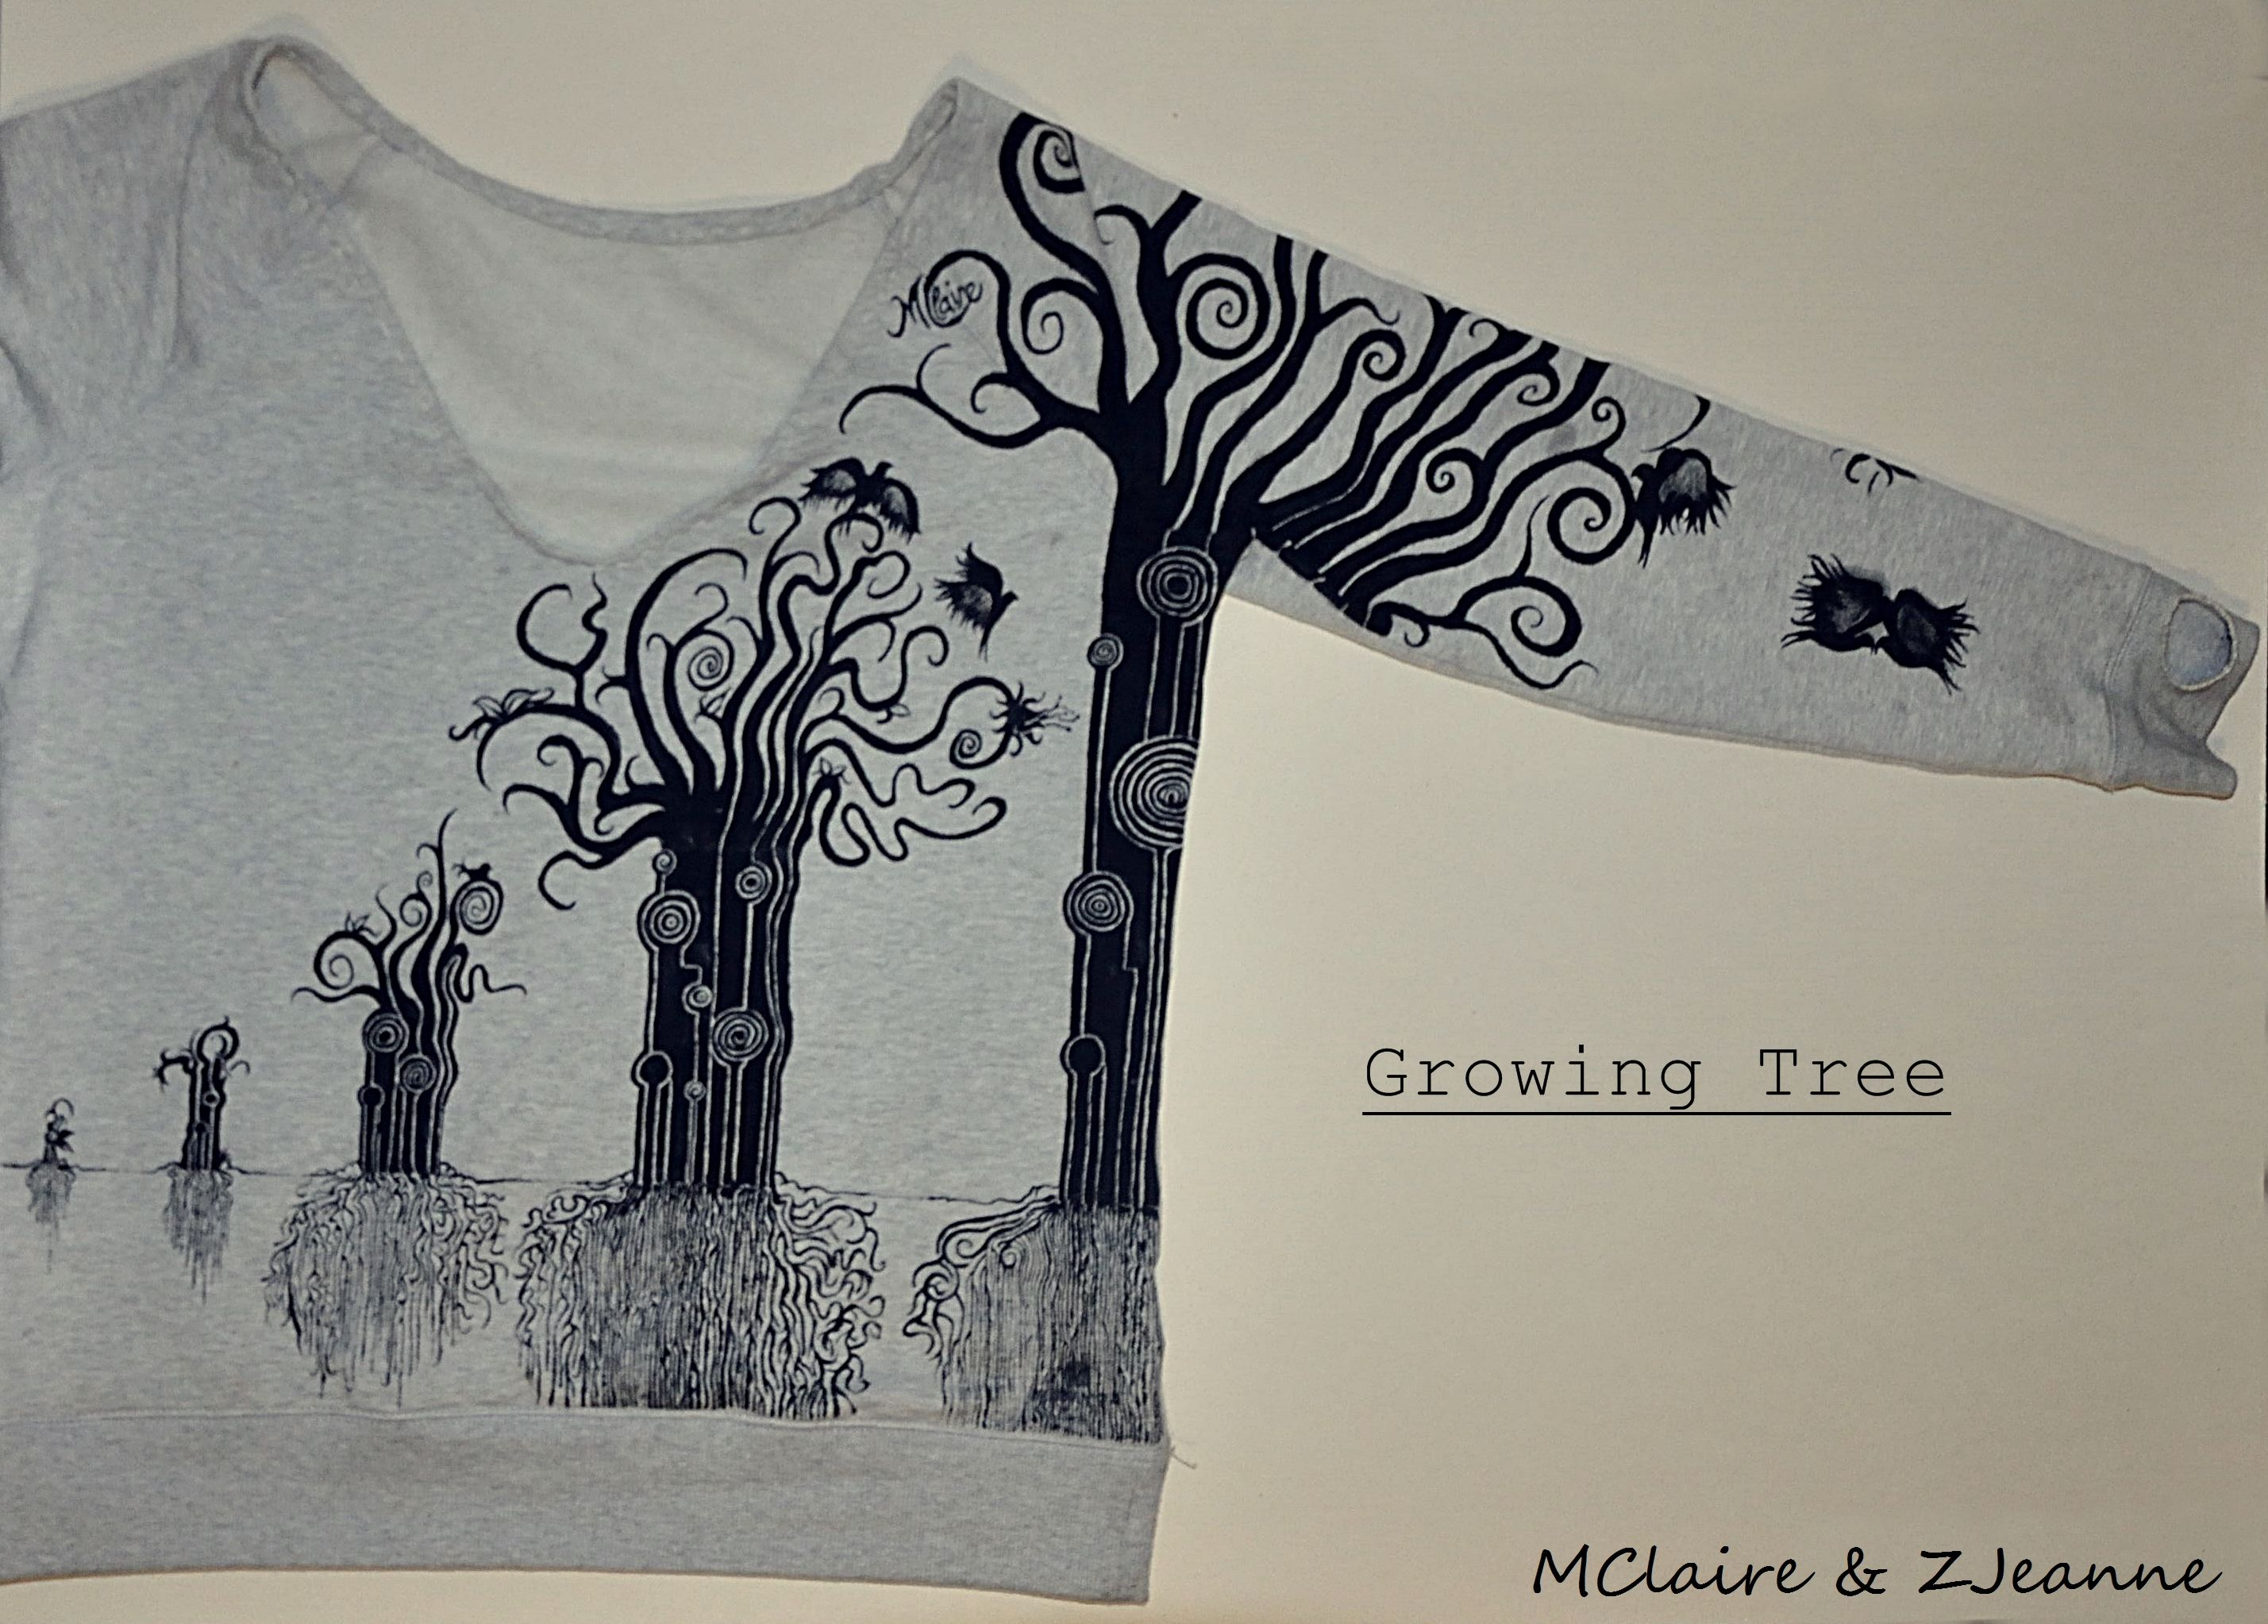 Handmade Sweatshirt #handmade #sweatshirt #Hobby #faidate #grow #growing #tree #nature #forceofnature #art  #clothes #design #identity #life #unic